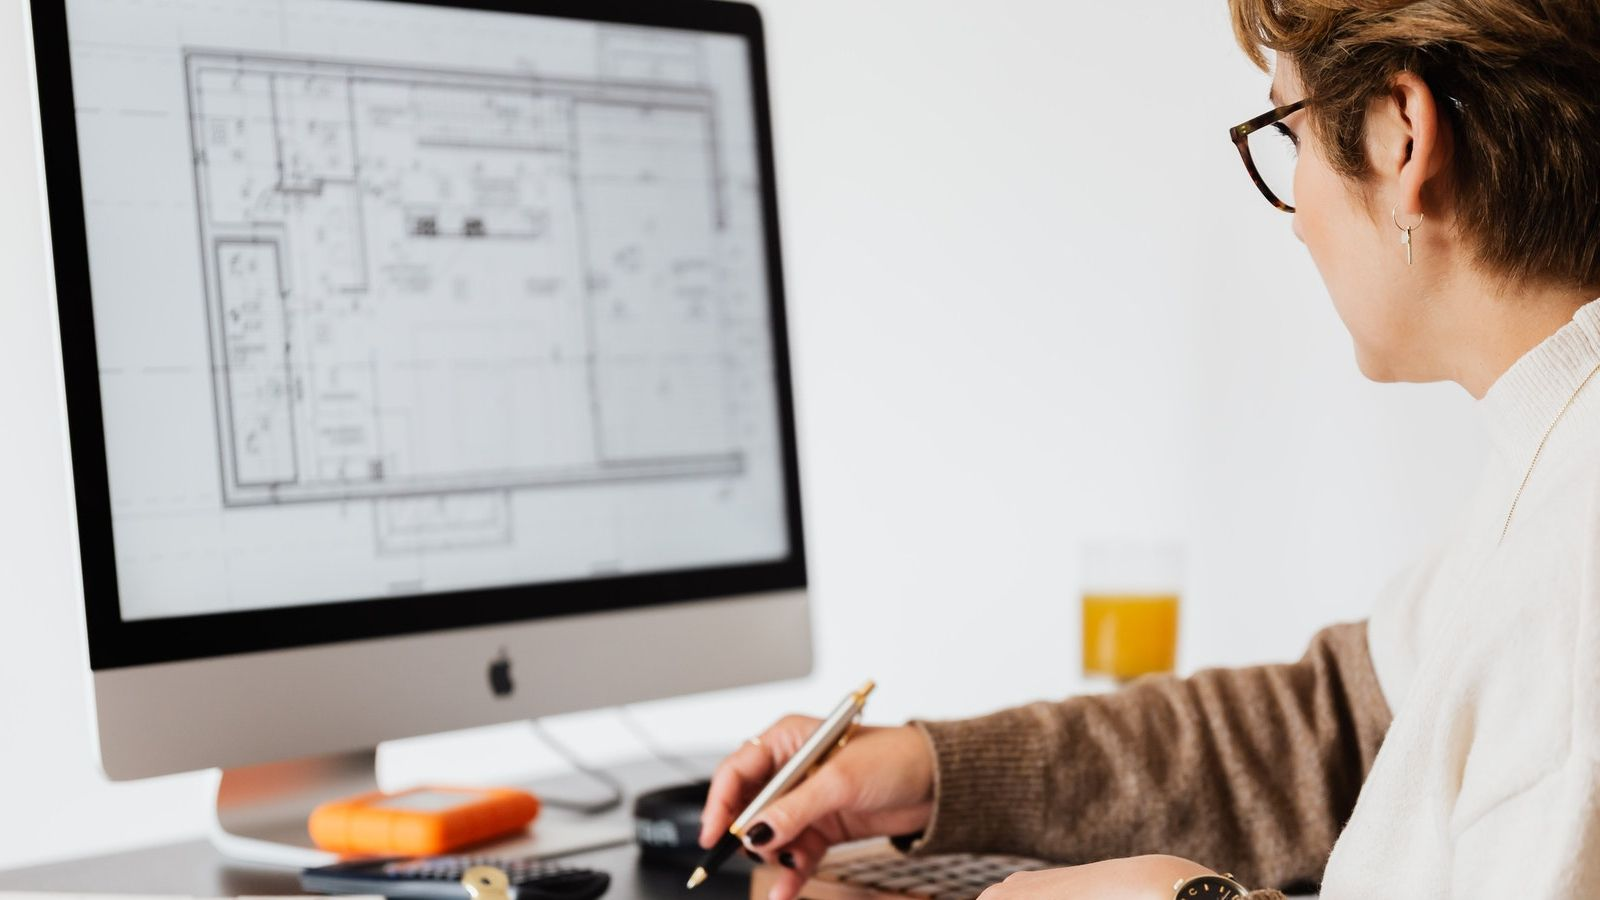 Woman looking at building plans on a computer screen banner image